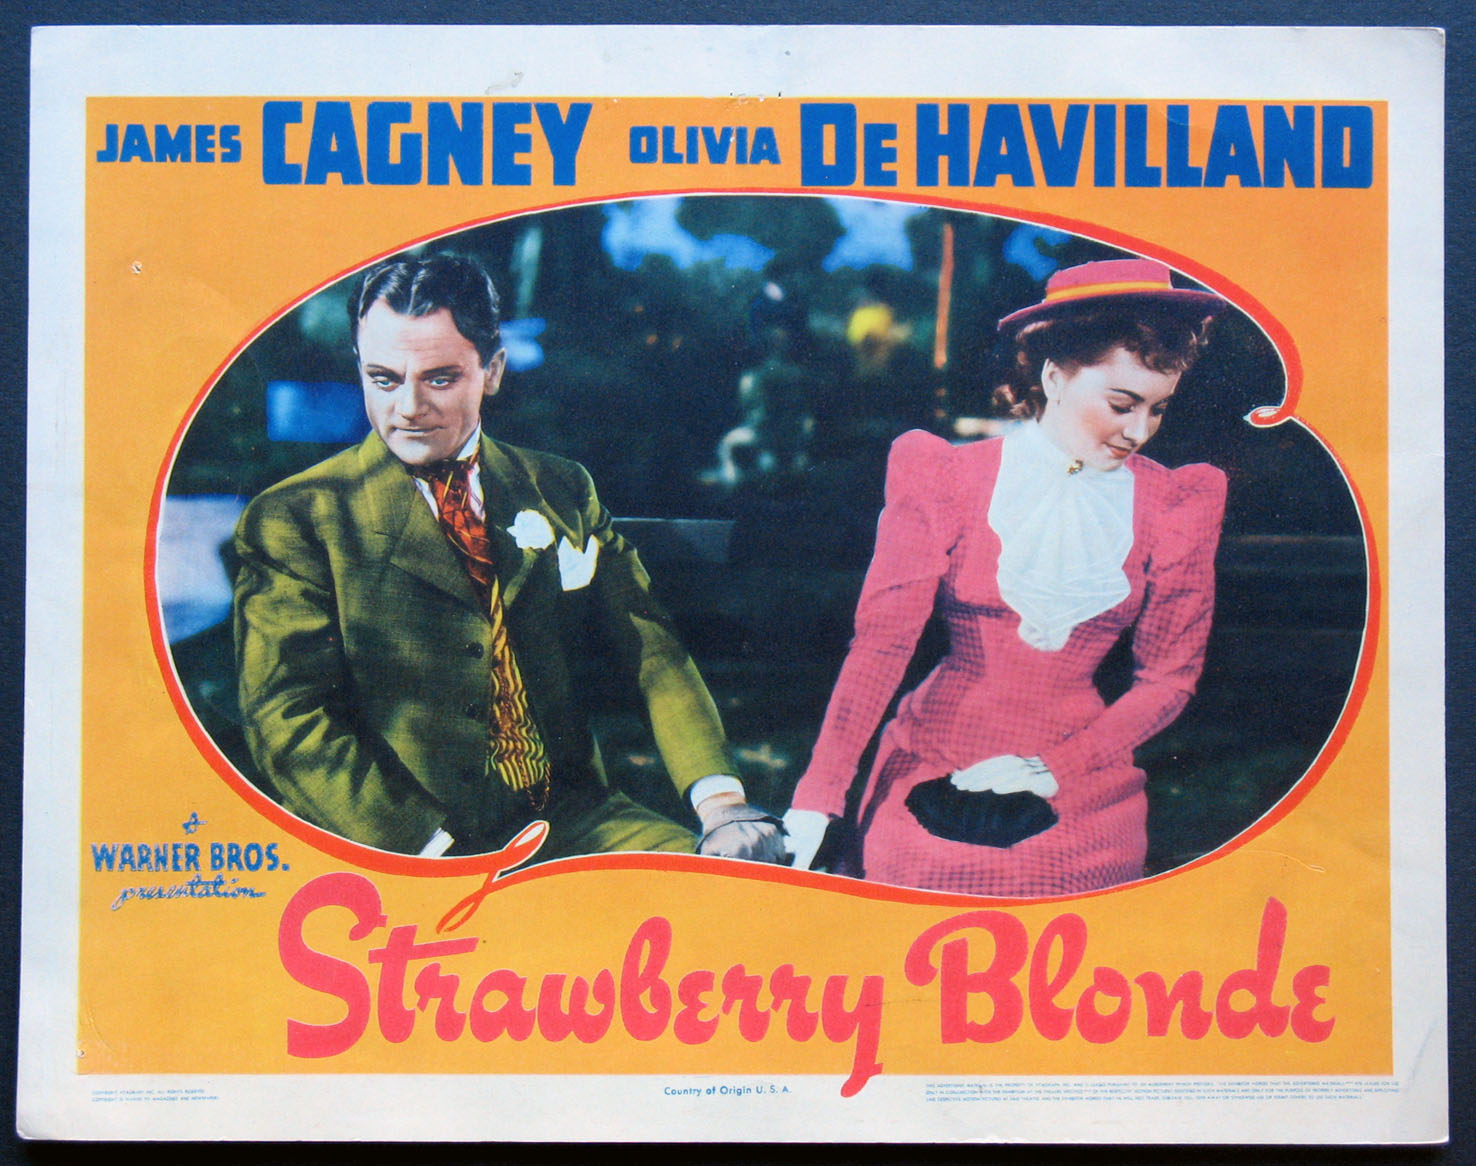 STRAWBERRY BLONDE @ FilmPosters.com